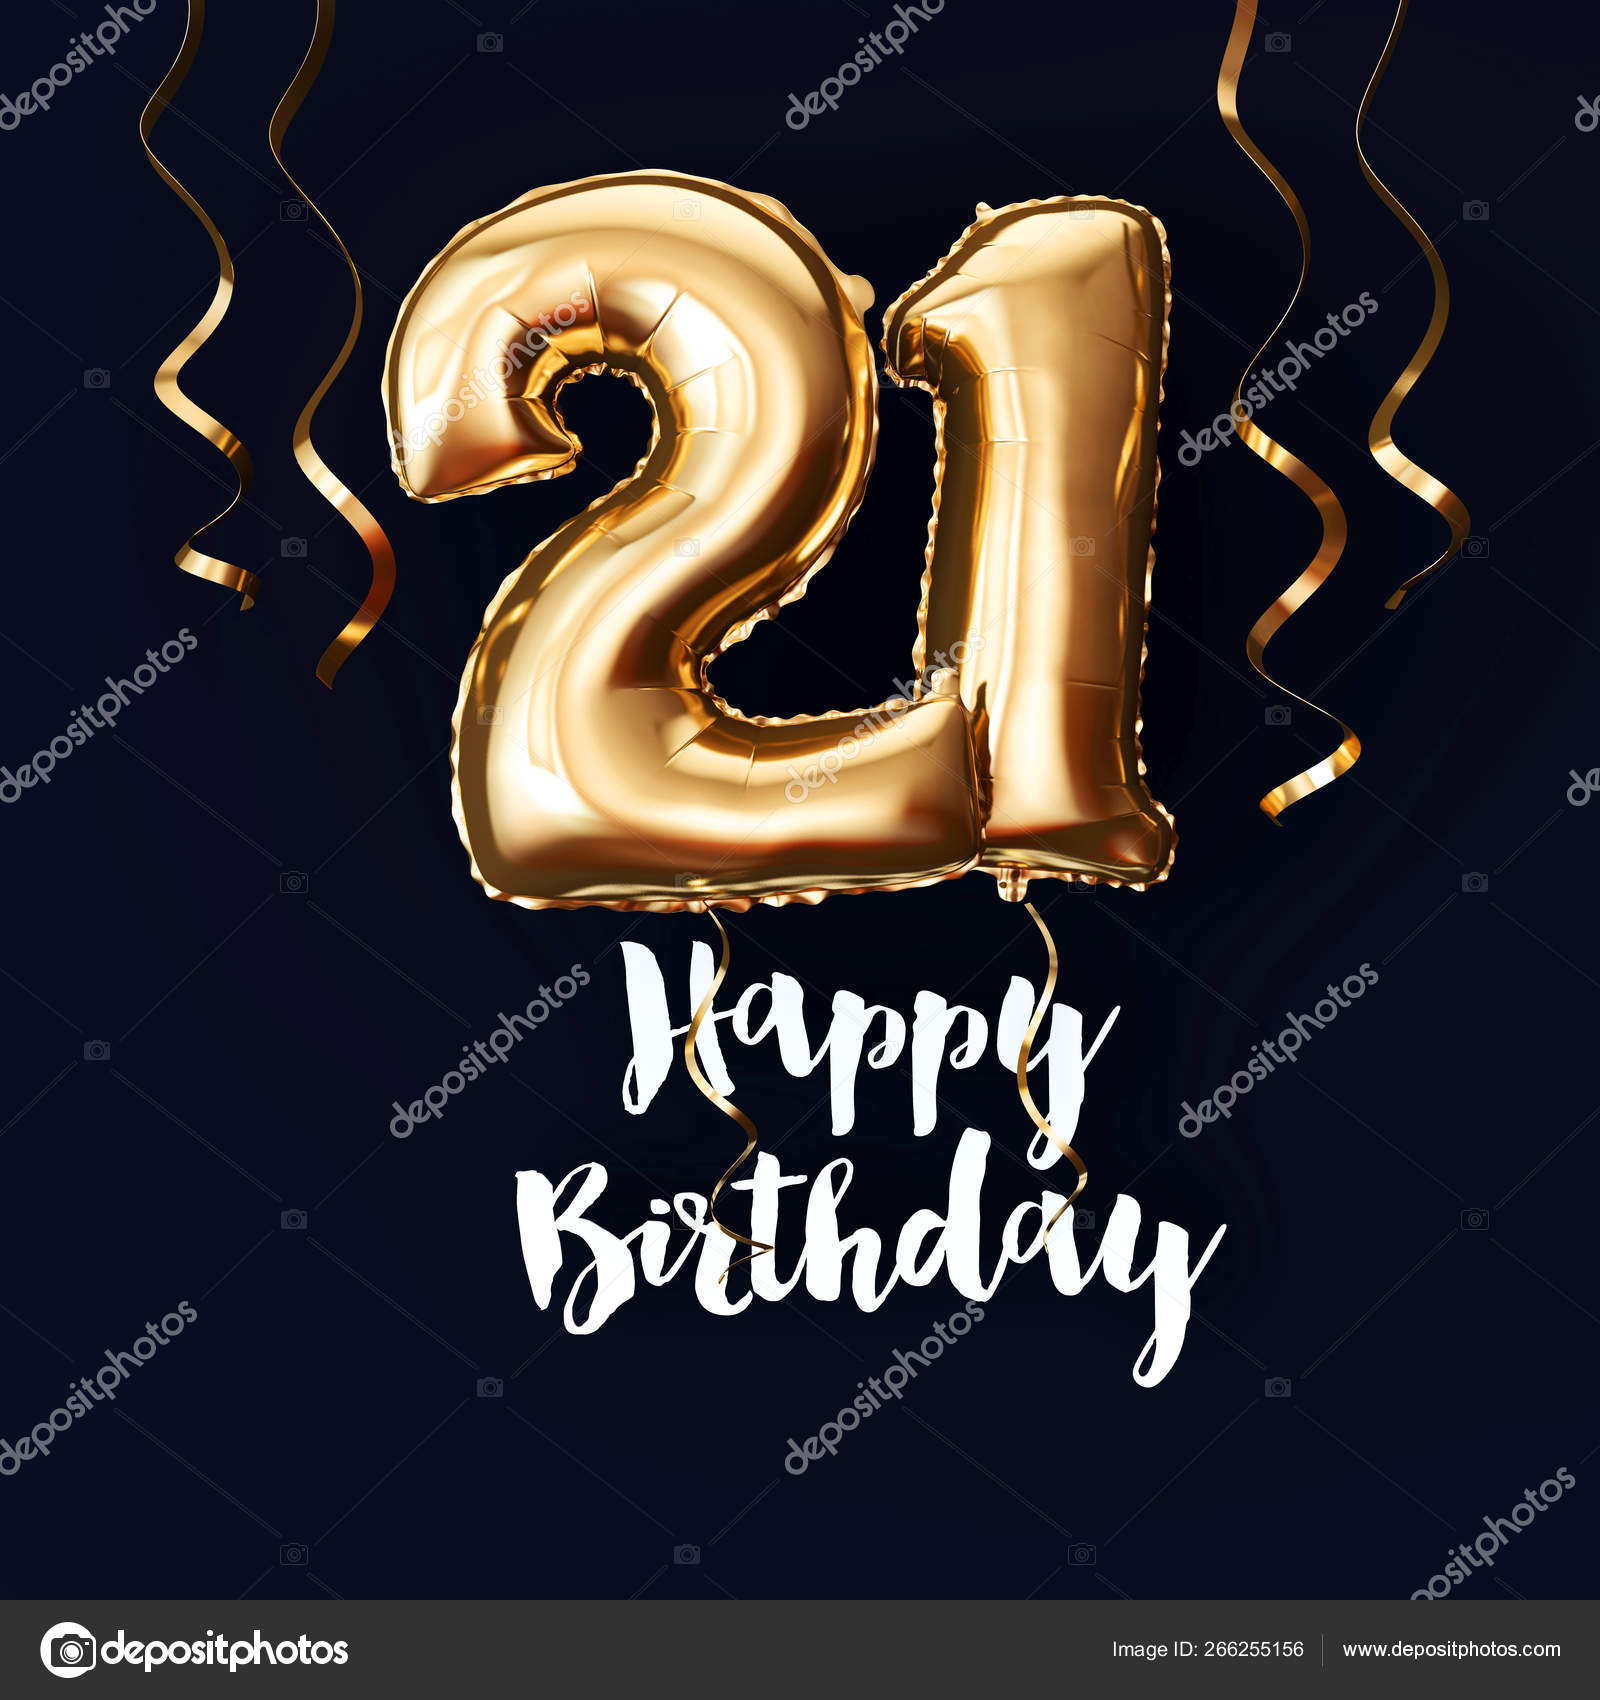 Happy 21st Birthday gold foil balloon background with ribbons  3D